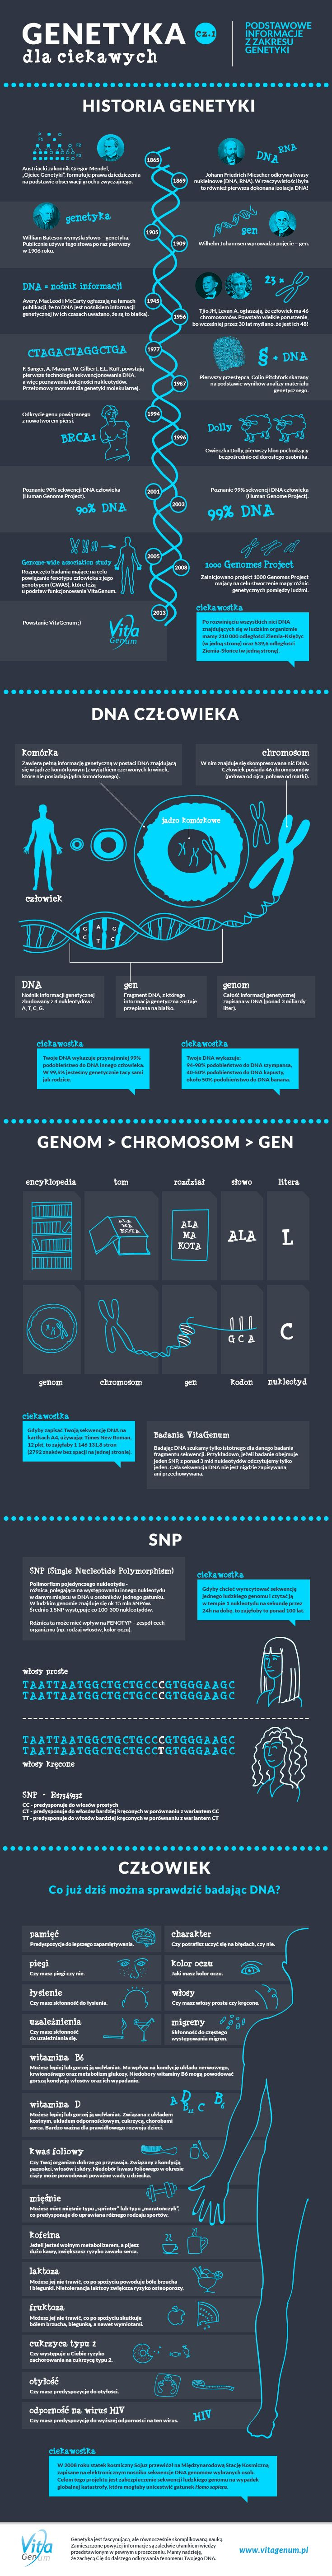 Getetyka  i  DNA #genetic #DNA #infographic